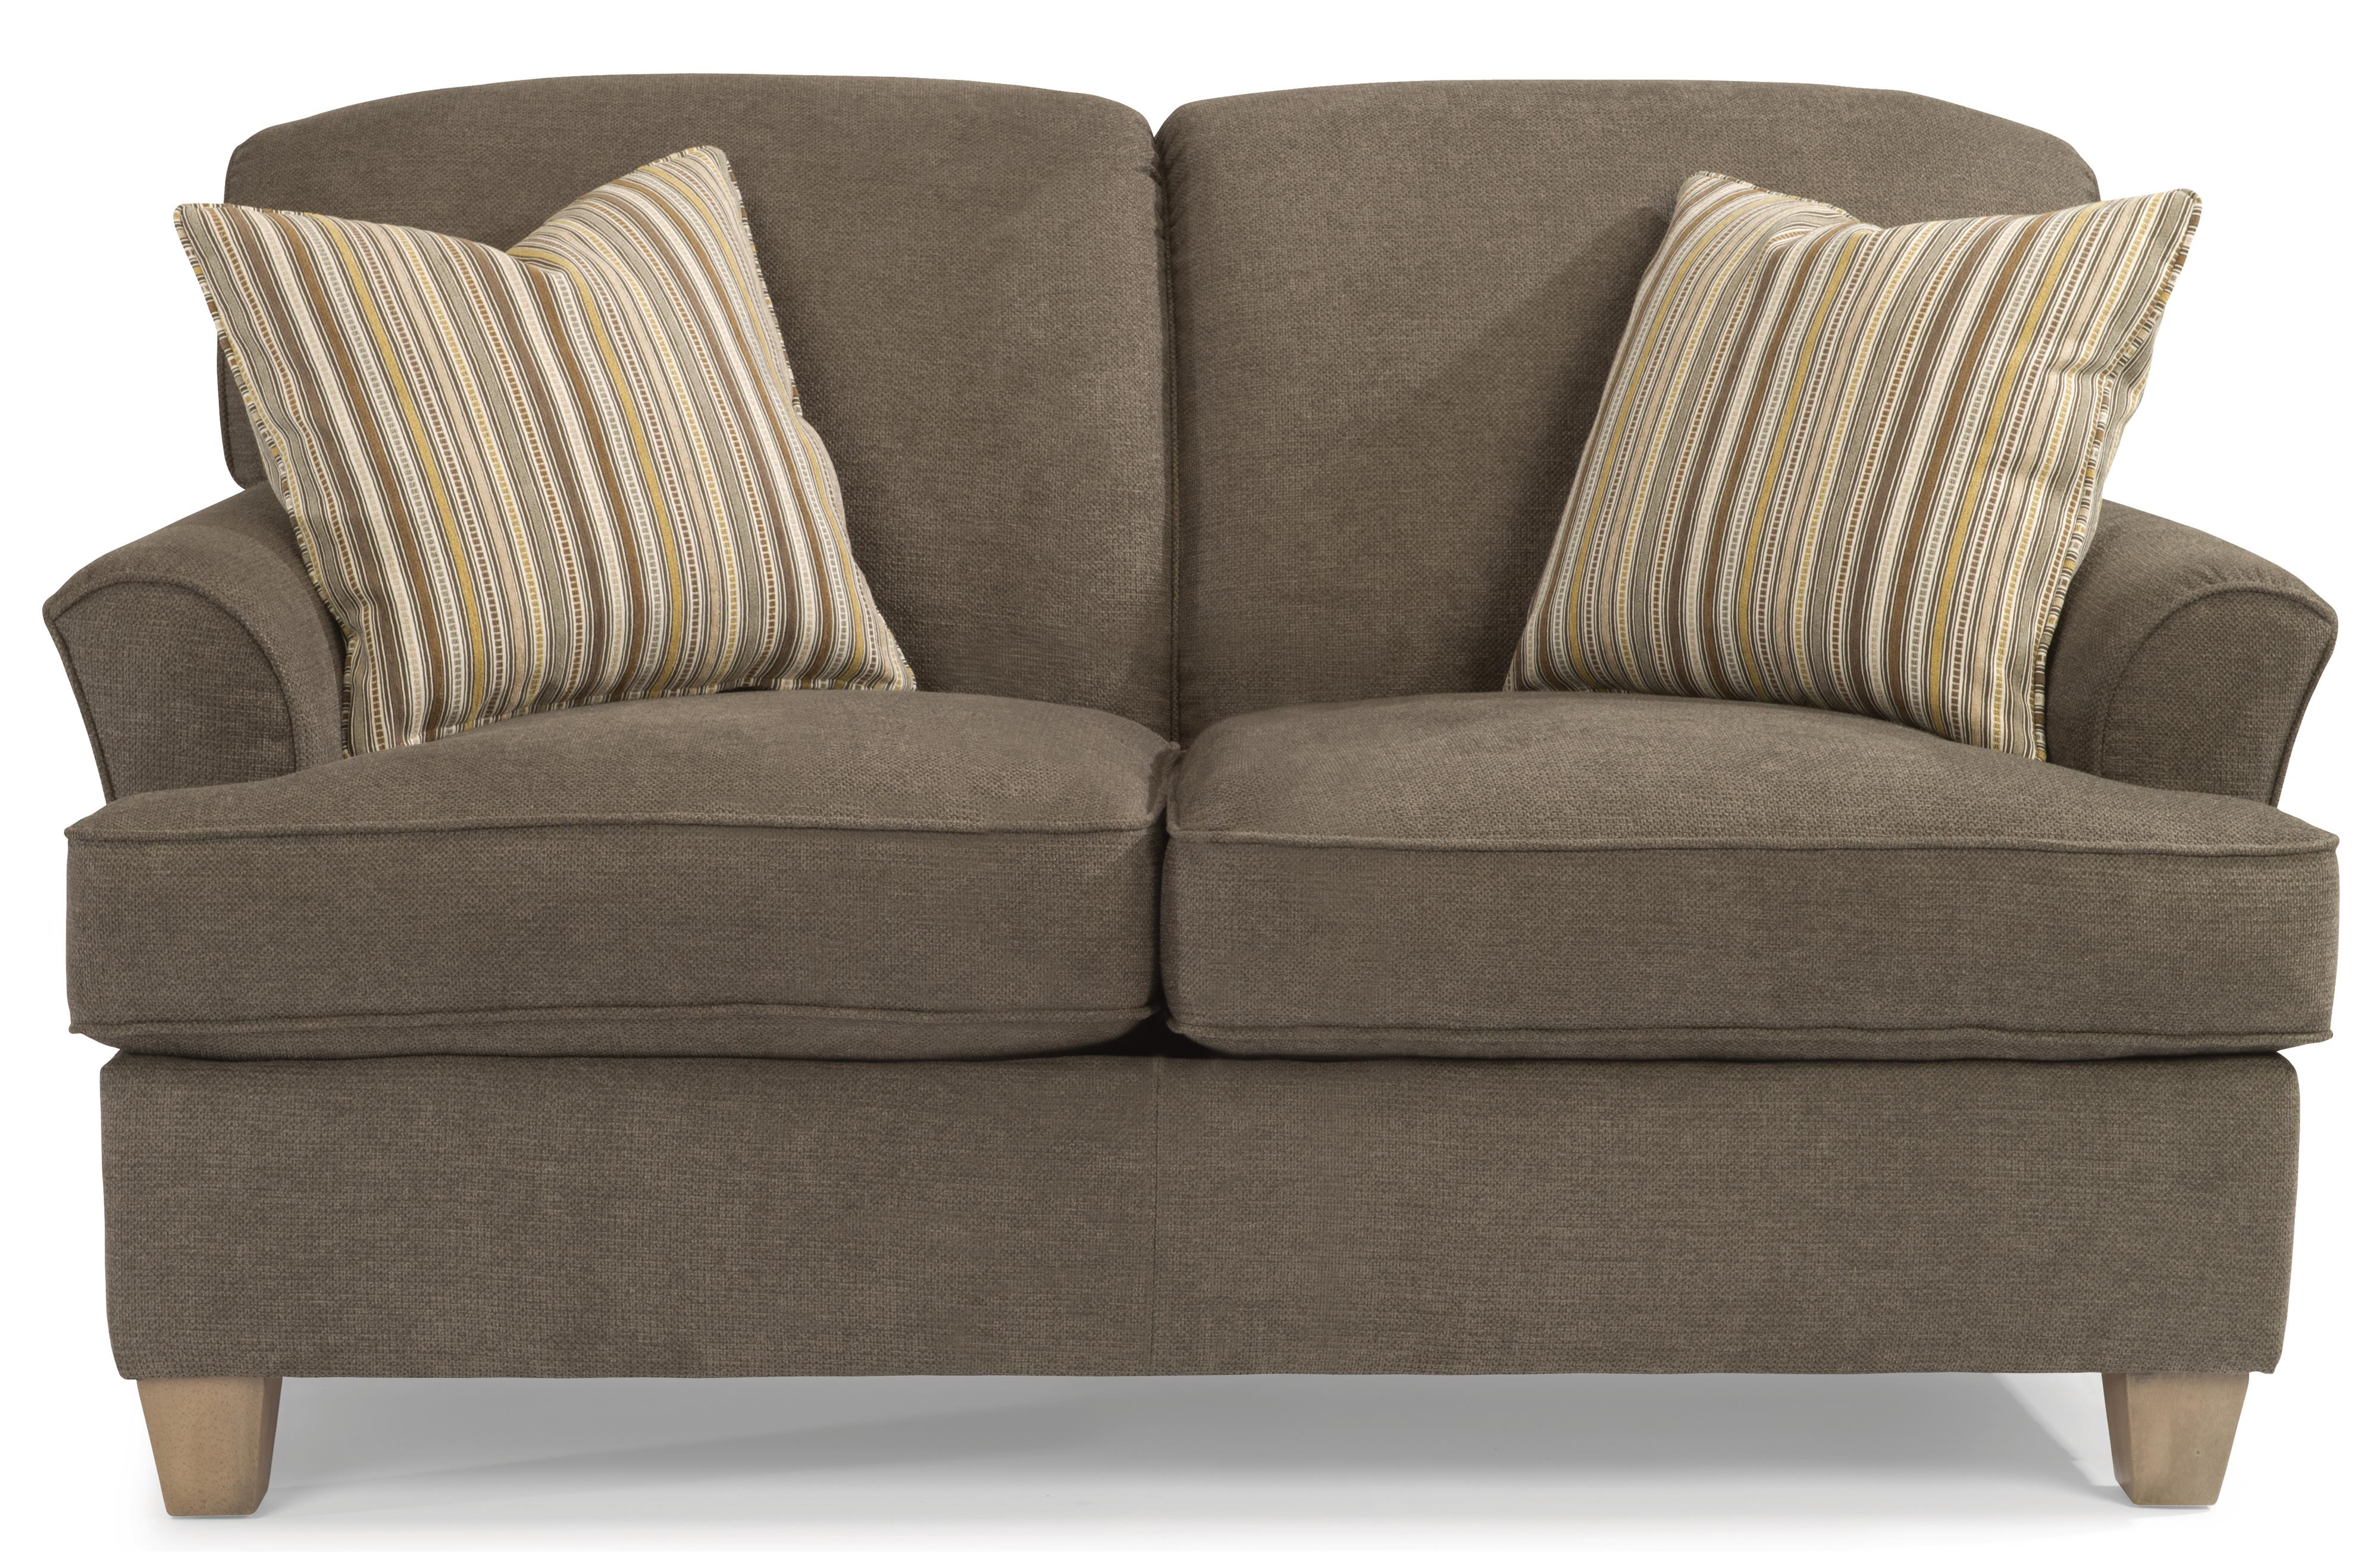 Atlantis Loveseat by Flexsteel at Rooms and Rest